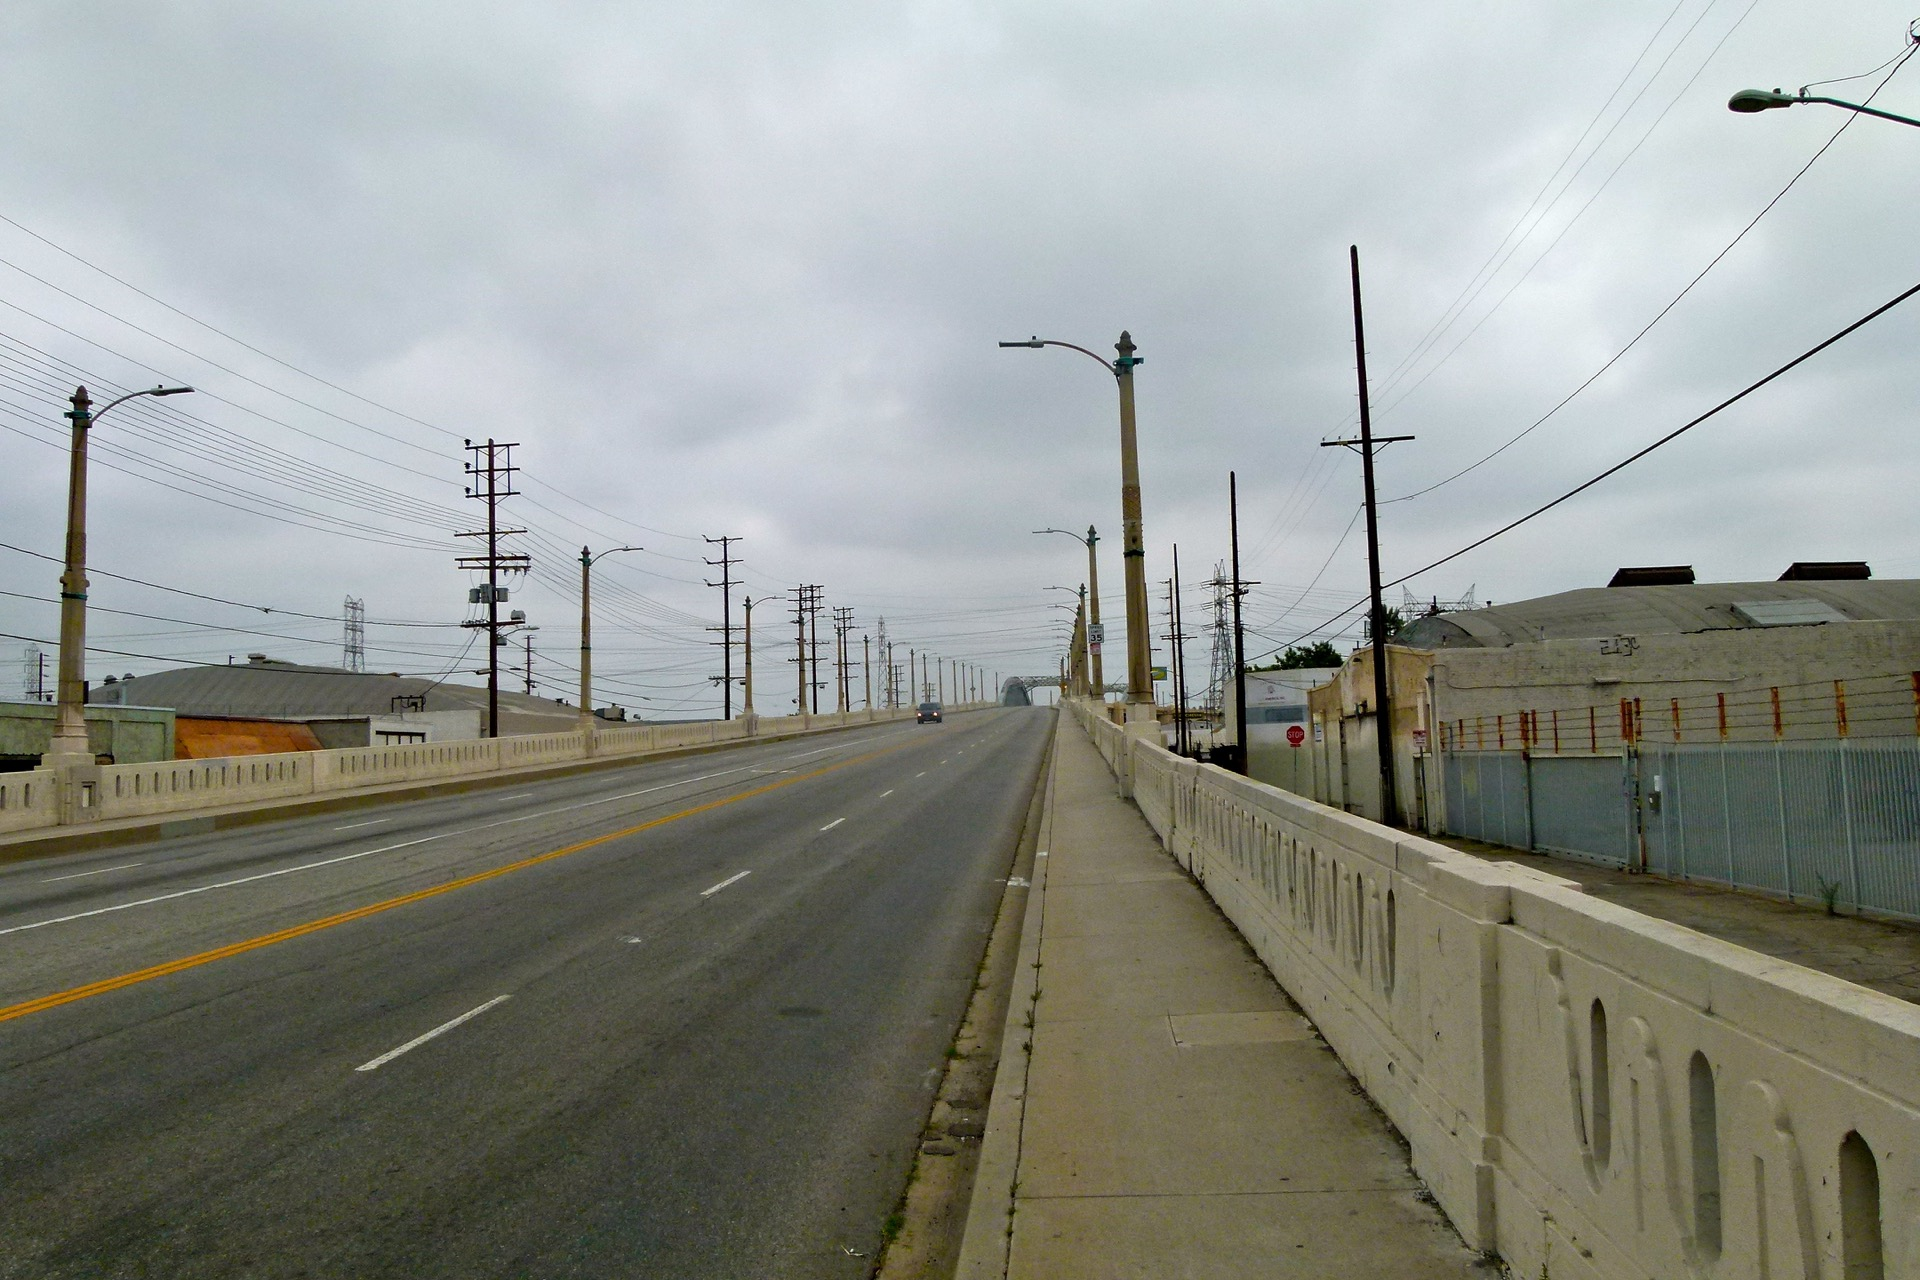 6th_street_bridge_002.jpg